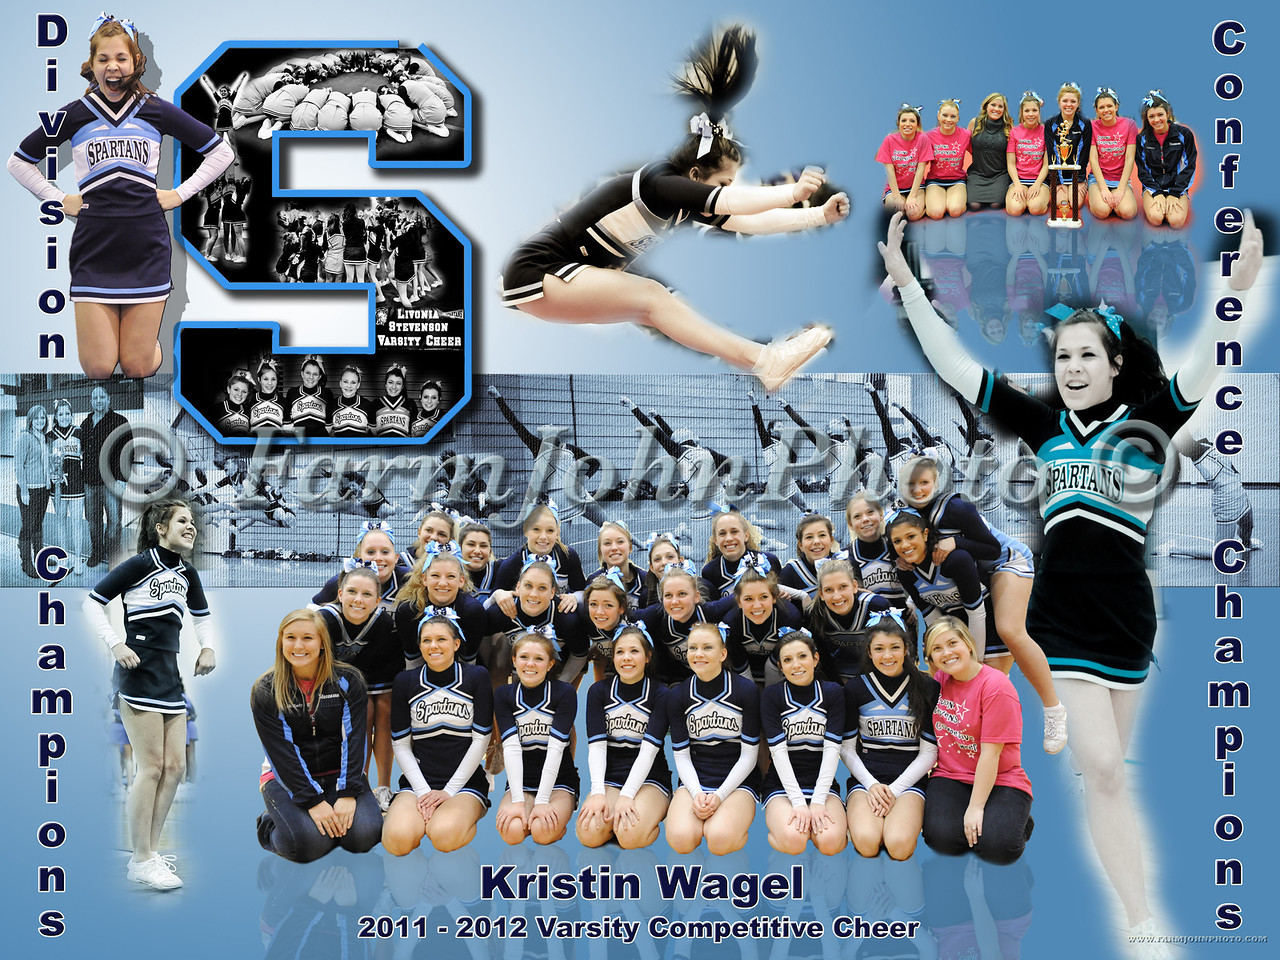 Kristin Wagel 24 x 18 Format Proof 3